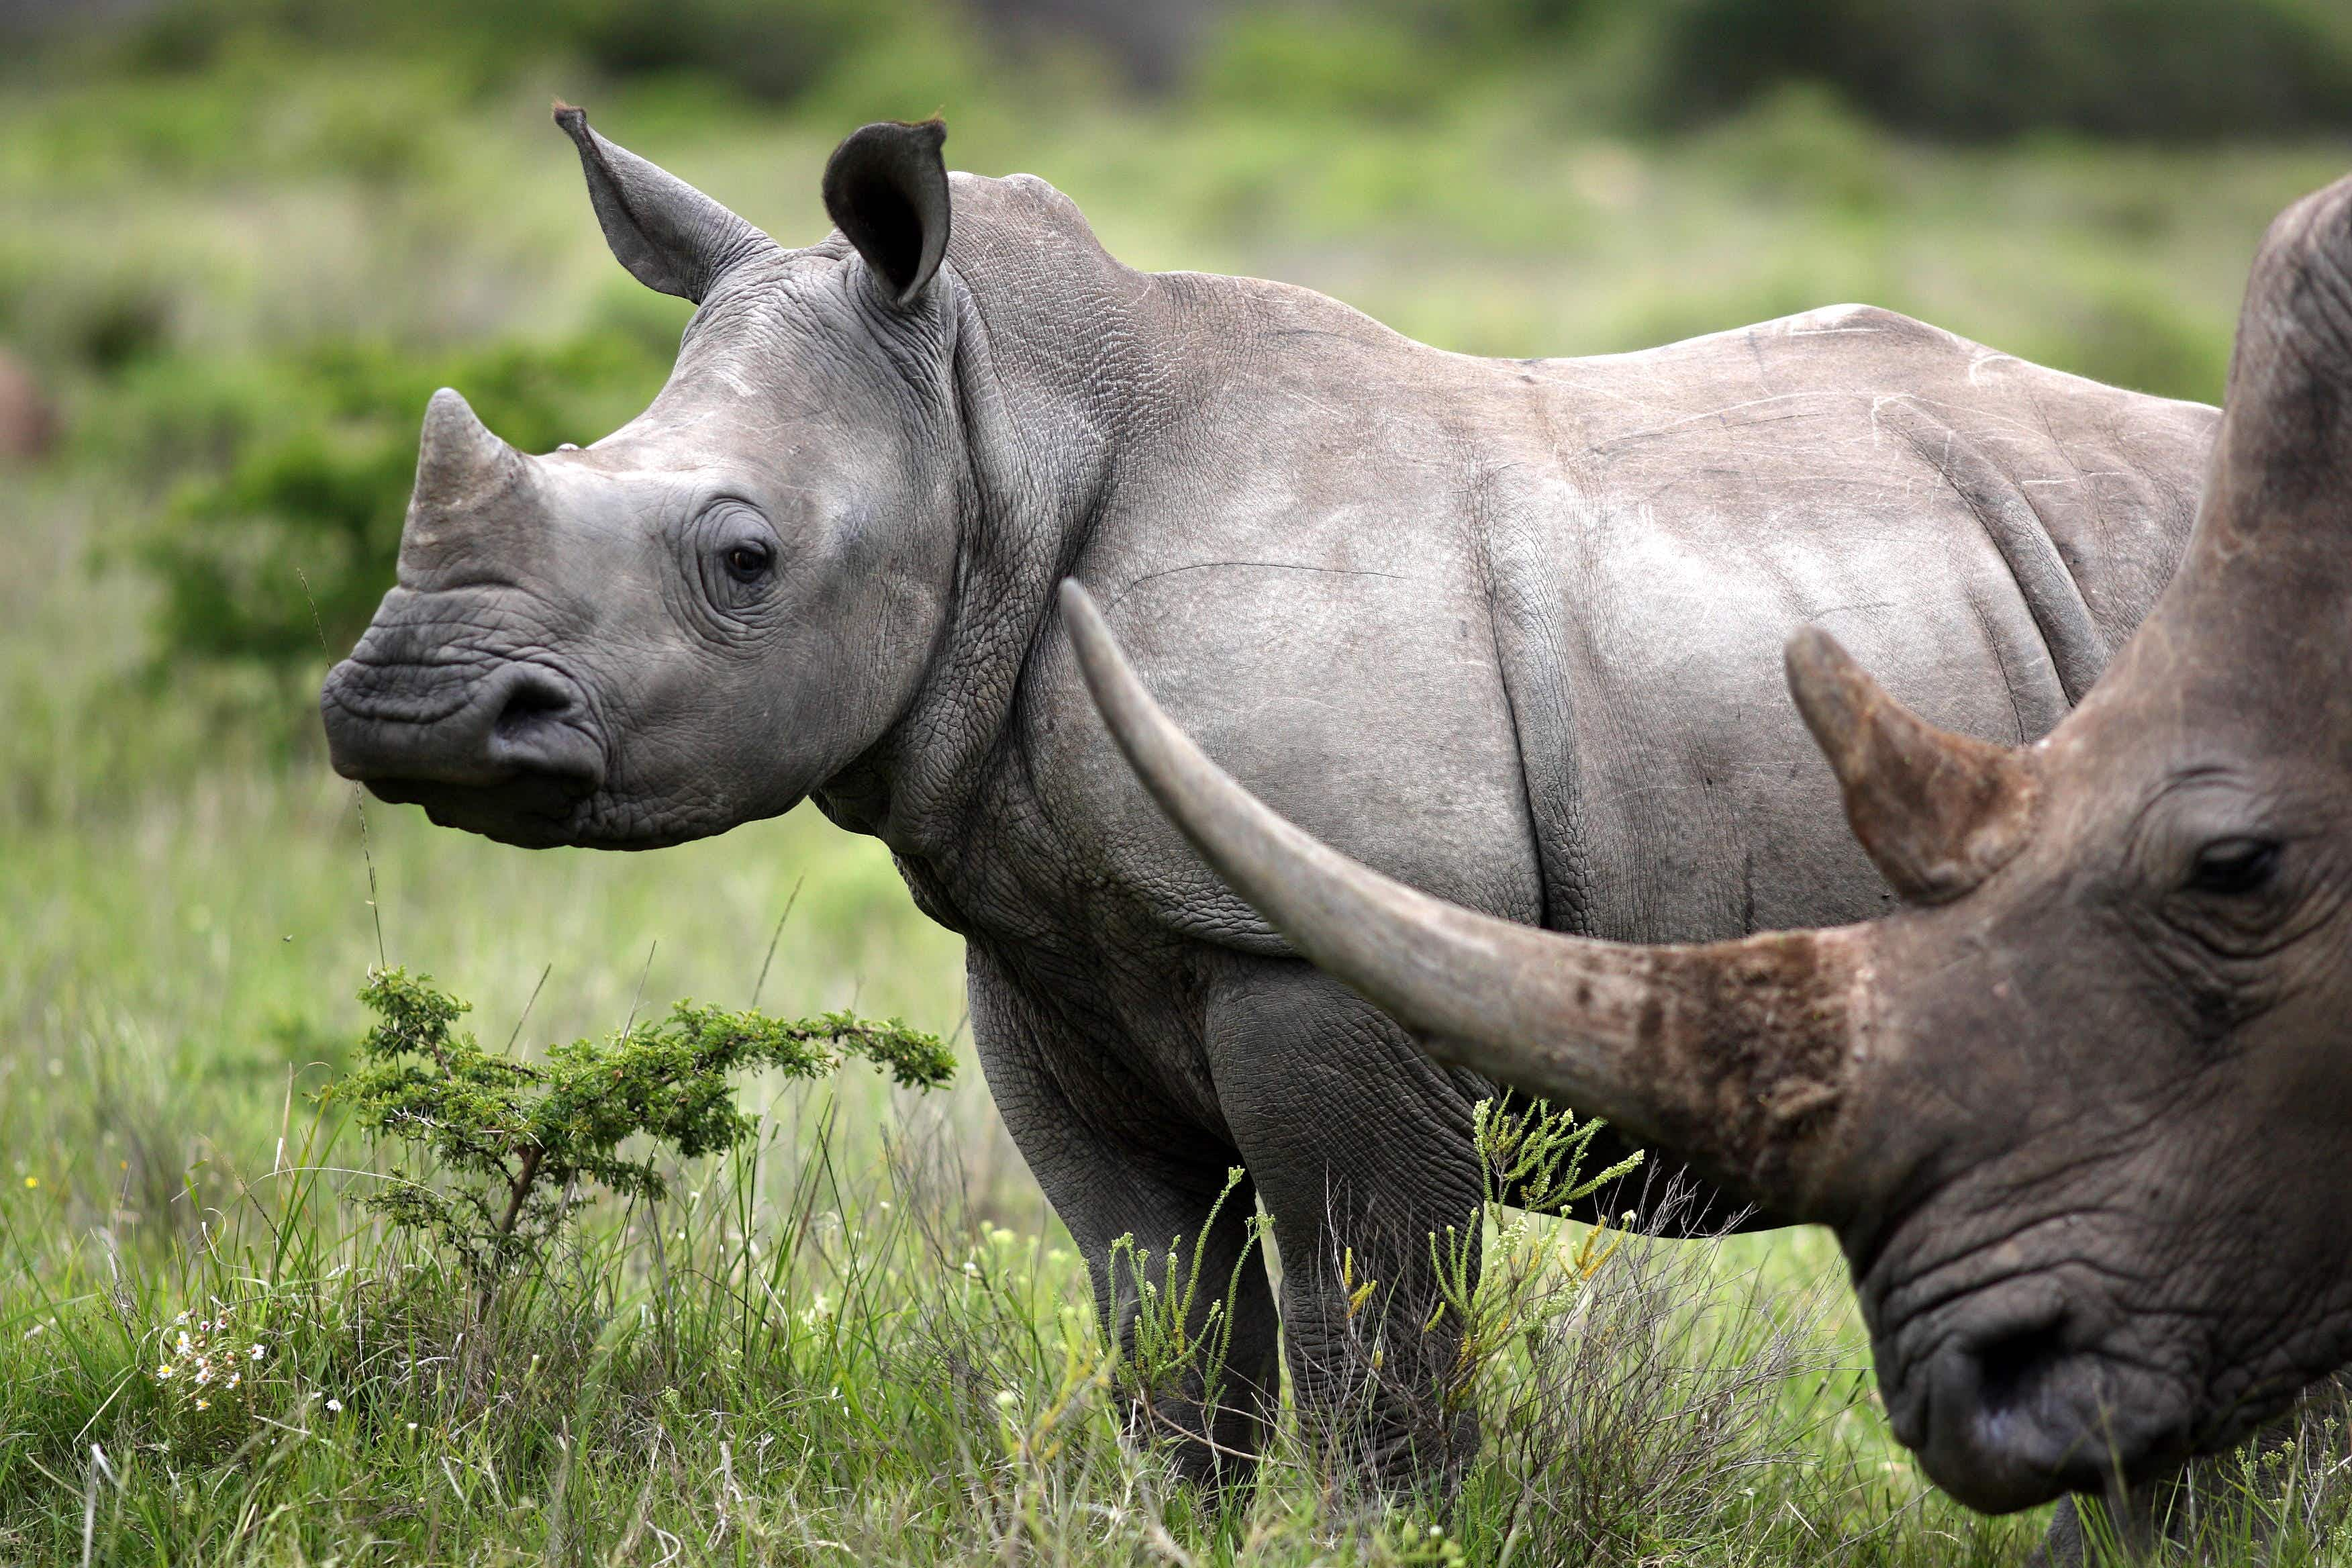 Walking safaris recognised as a way to see wildlife responsibly in South Africa